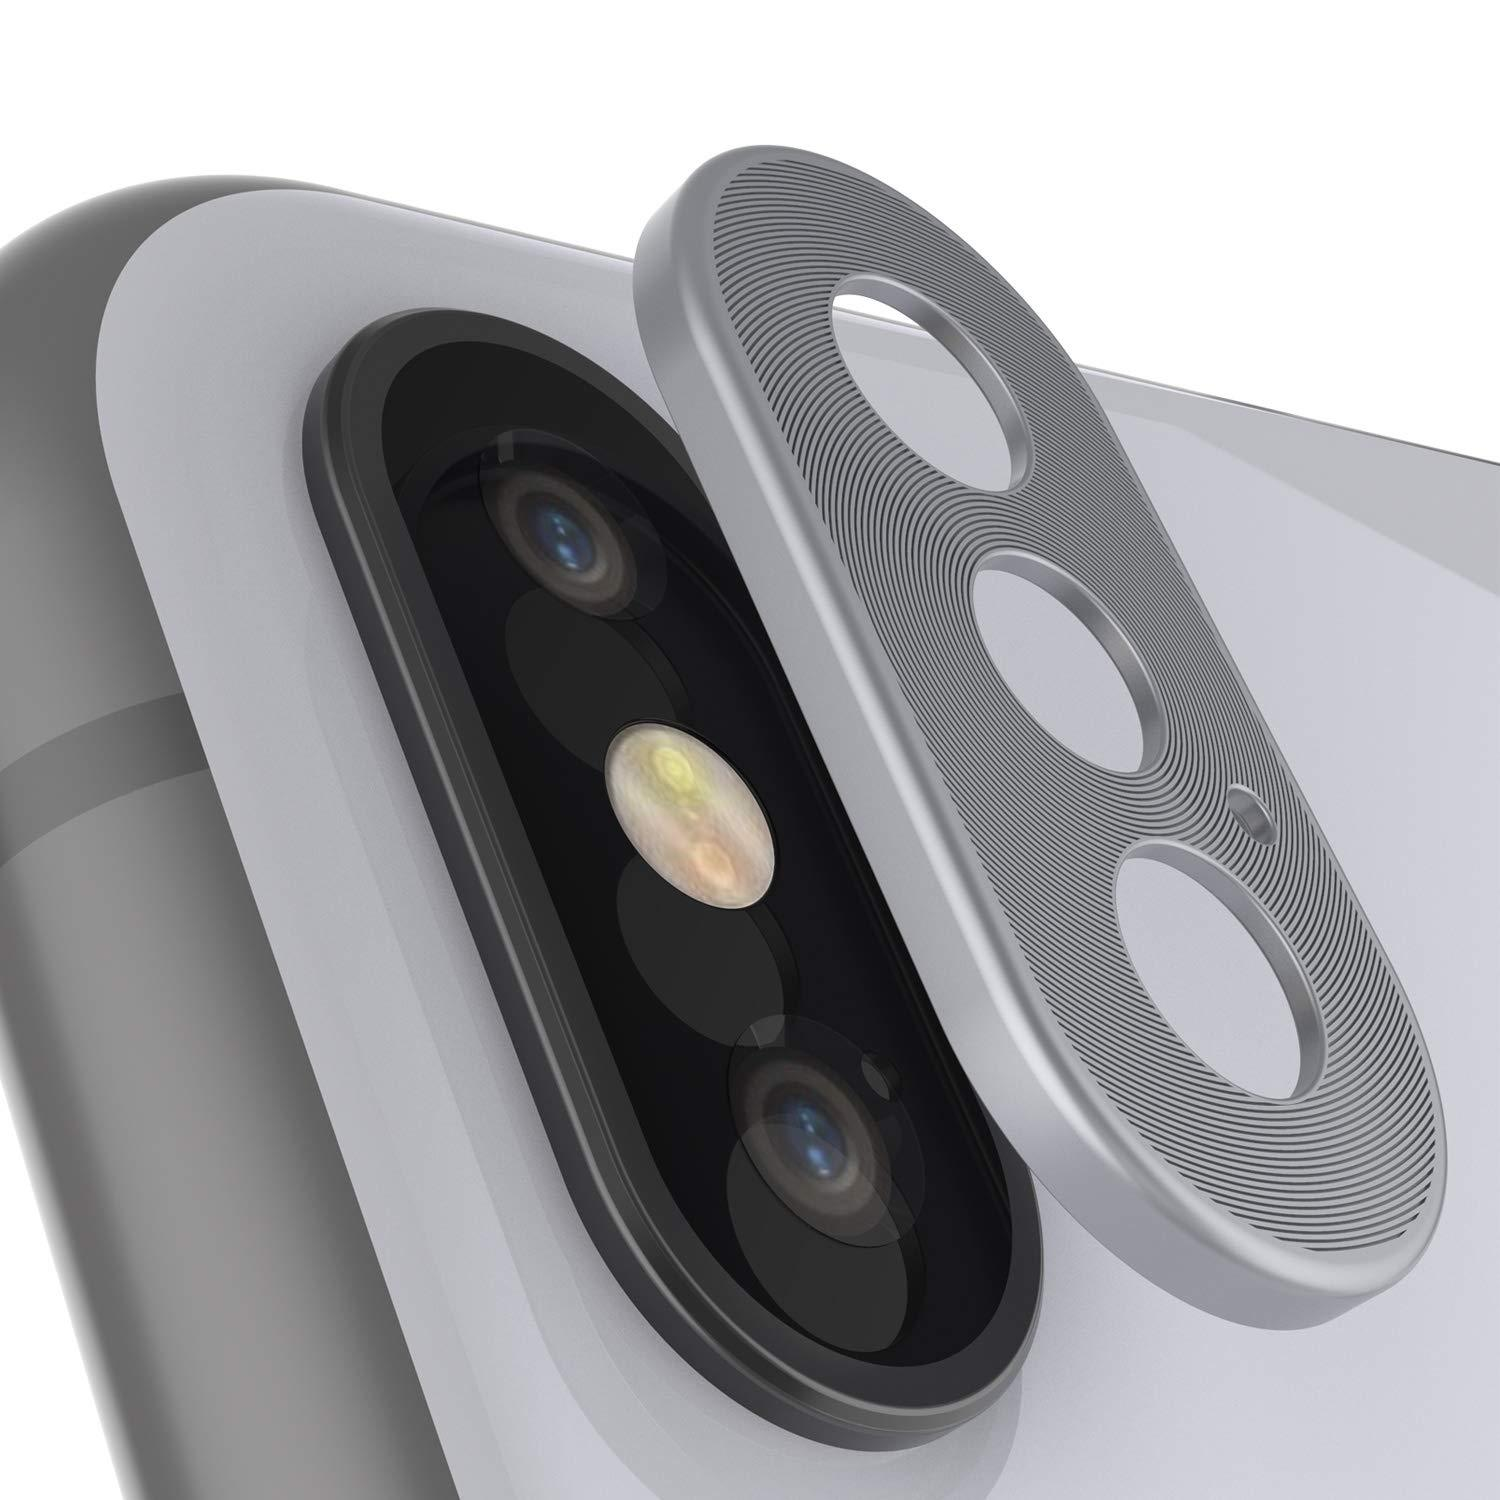 Punkcase iPhone XS Max Camera Protector Ring [Silver]